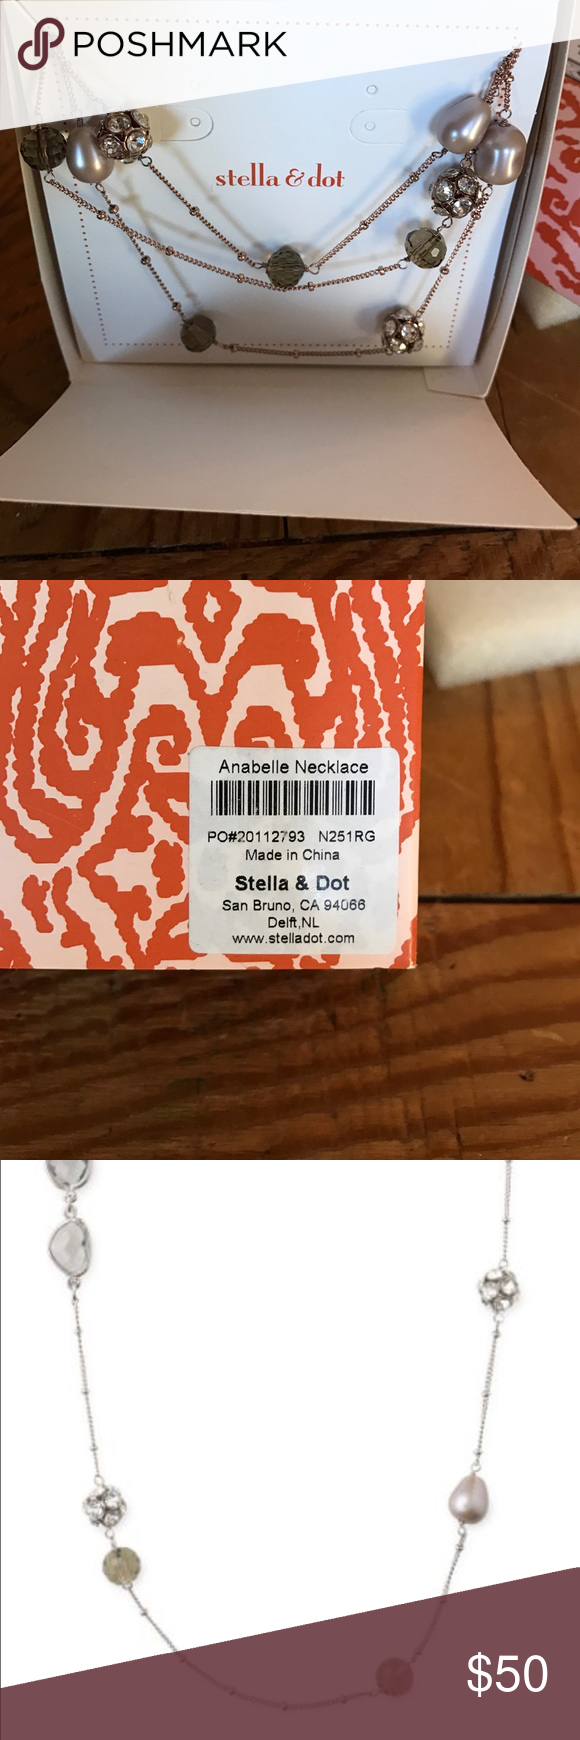 Stella & Dot Anabelle necklace. New in box. Gorgeous Stella & Dot Anabelle necklace. New in box! See photos for style! Rose gold metal. Stella & Dot Jewelry Necklaces